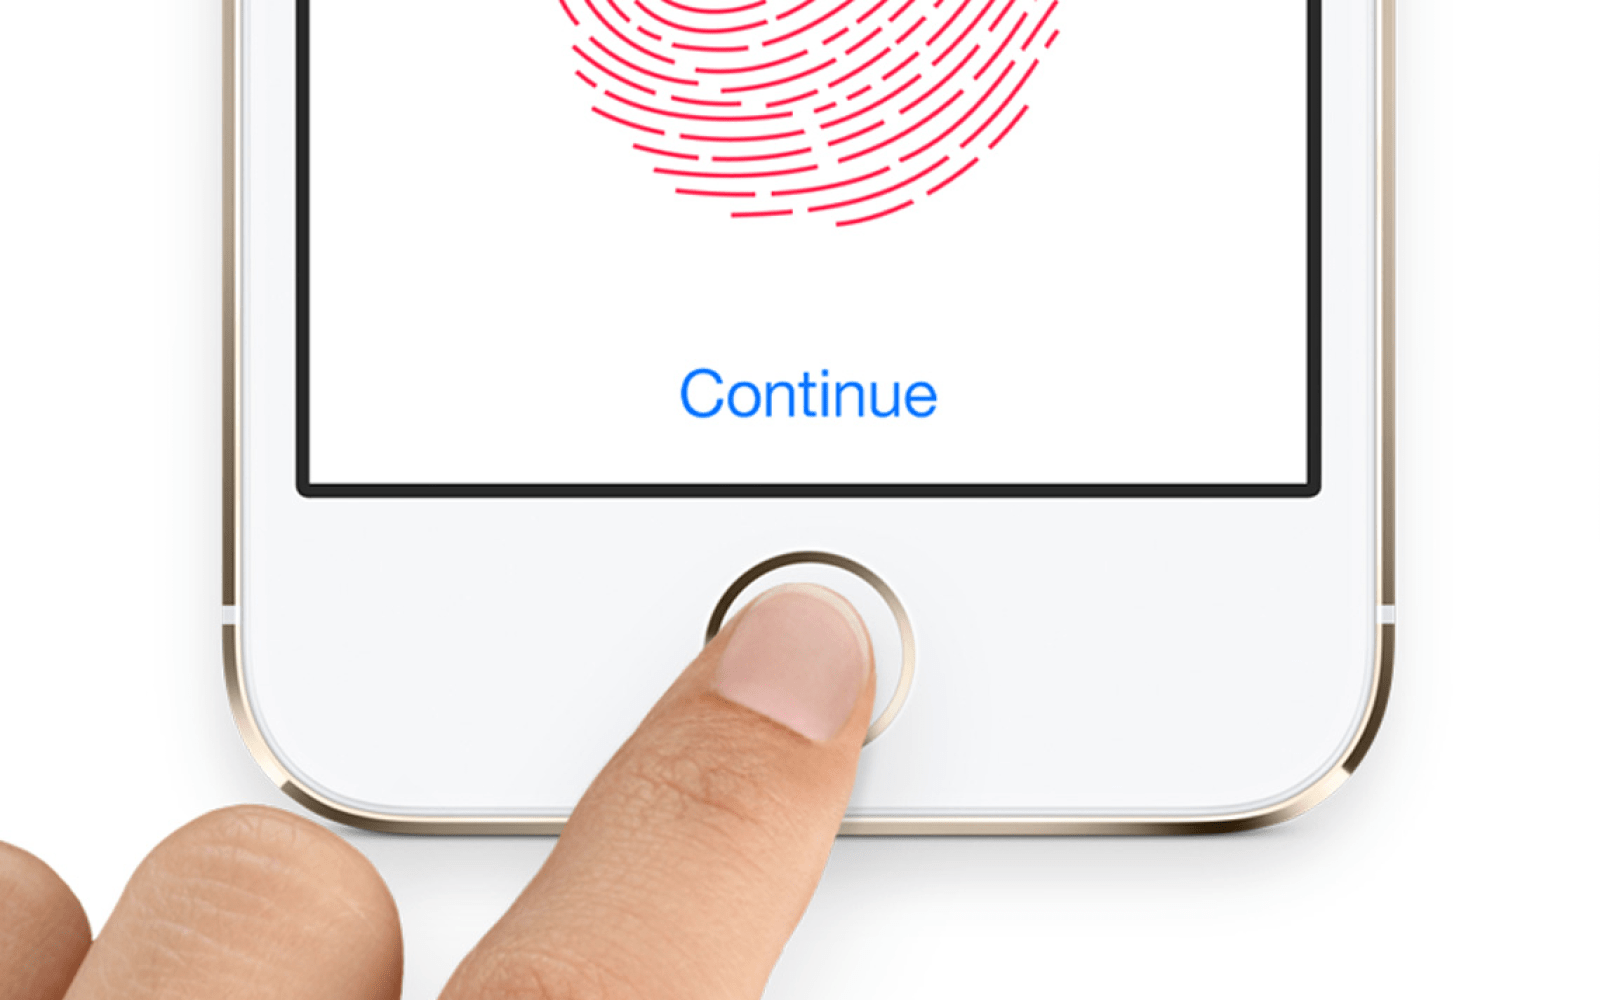 Apple Stores to show off iPhone 5s Touch ID feature using demo app